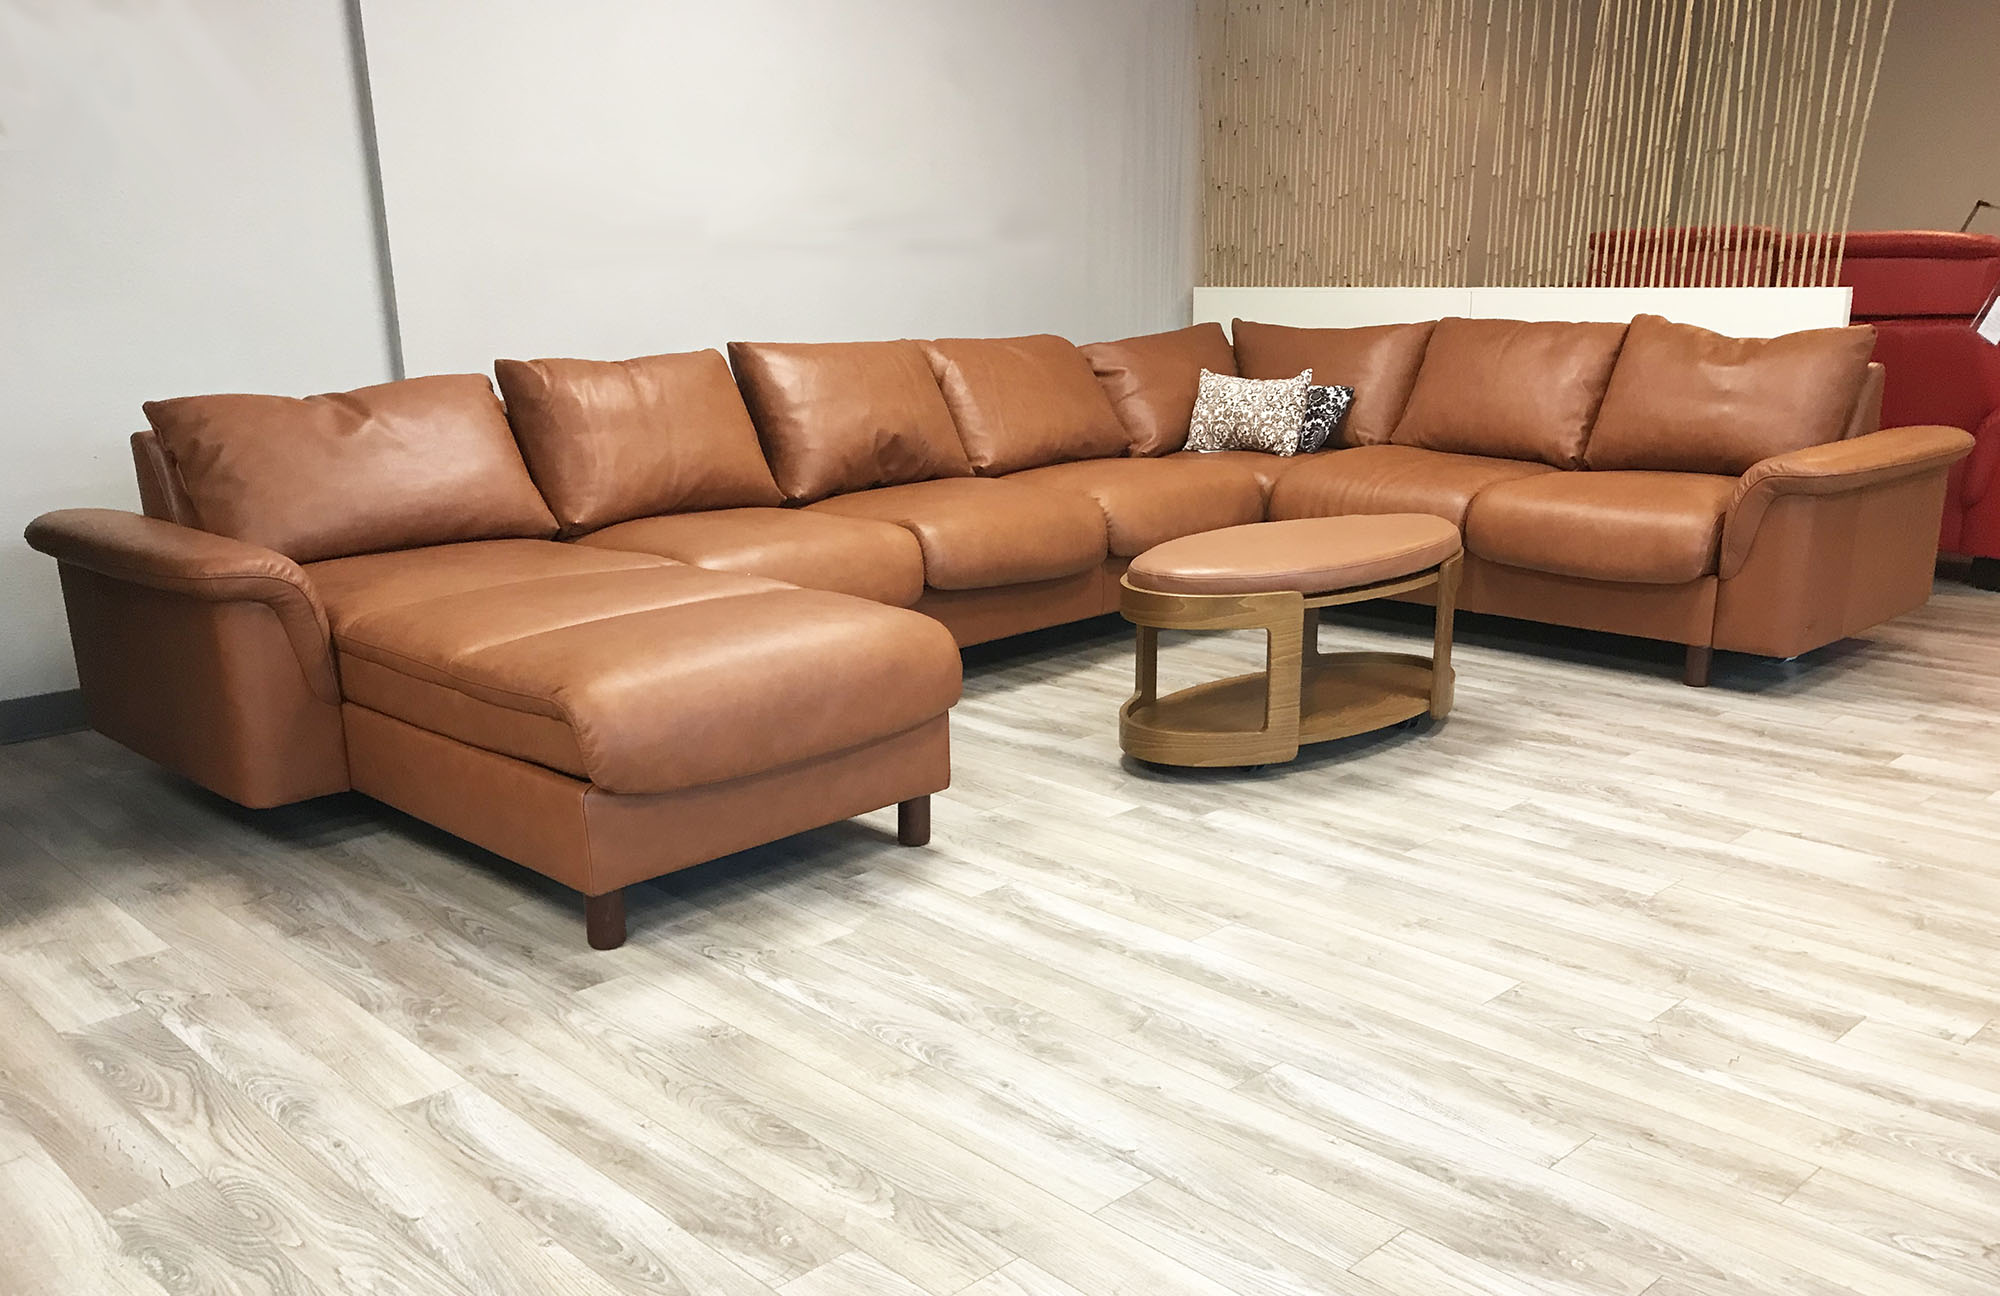 Stressless Wohnlandschaft Stressless E300 7 Seat Sectional Sofa With Longseat In Royalin